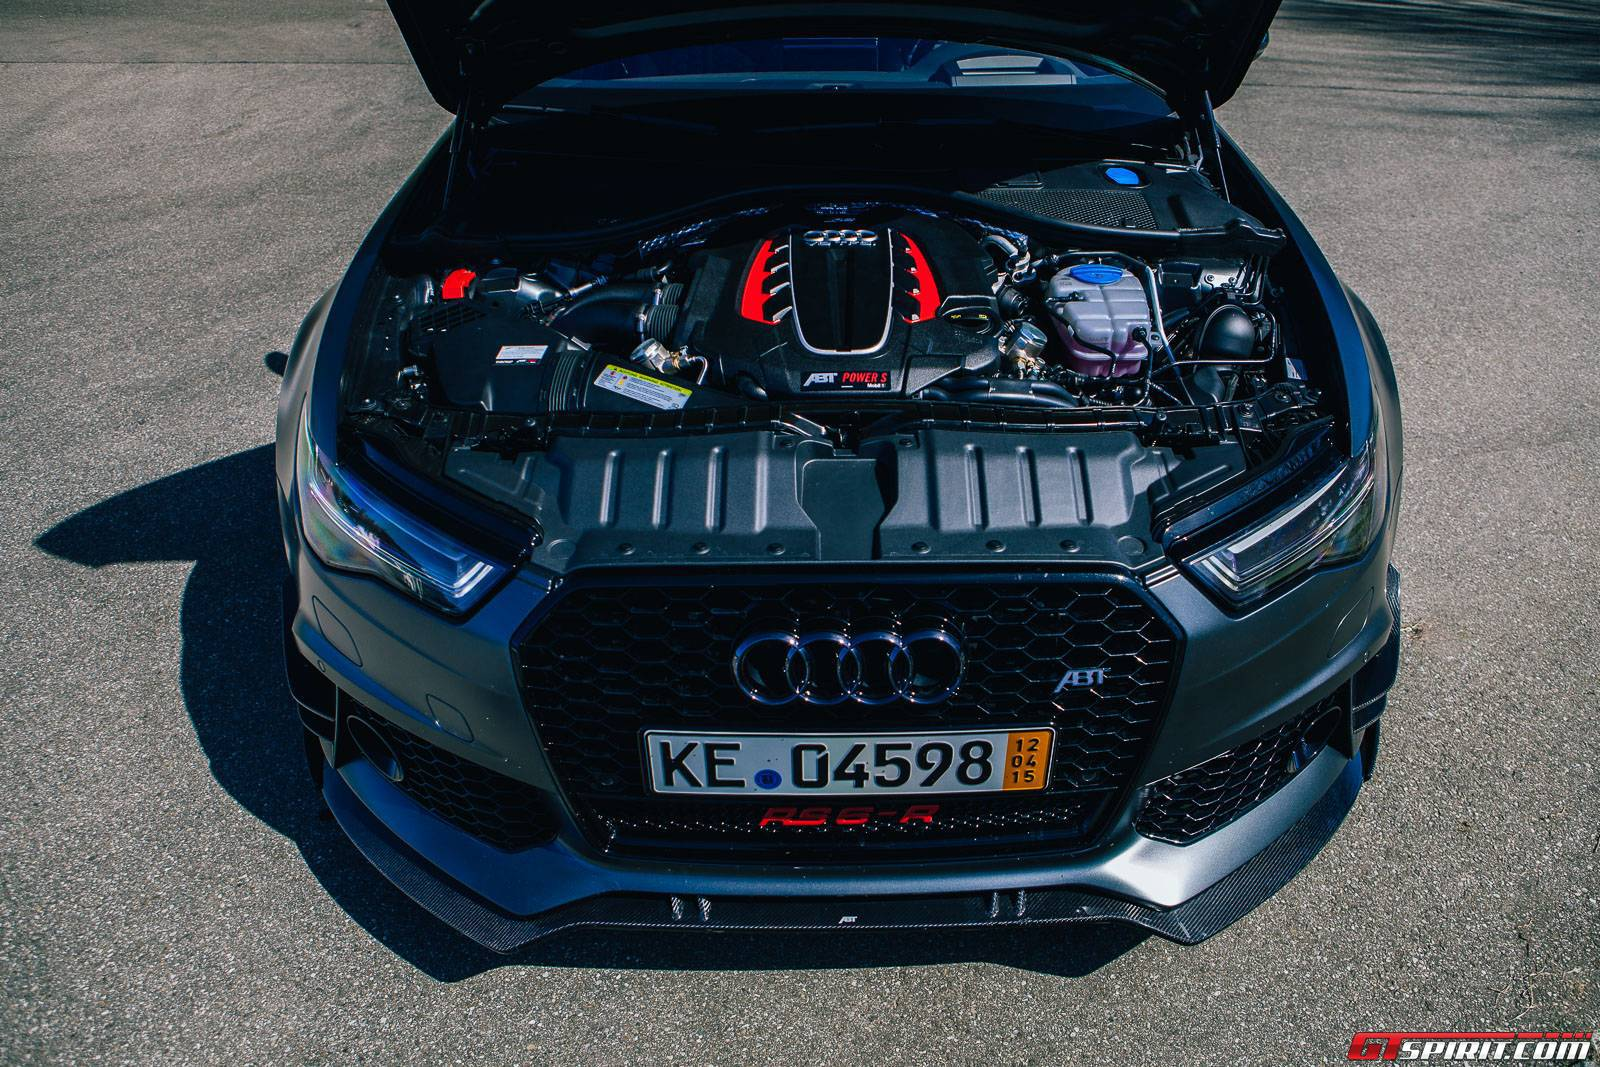 Abt rs6 r review gtspirit for Motor city performance plus